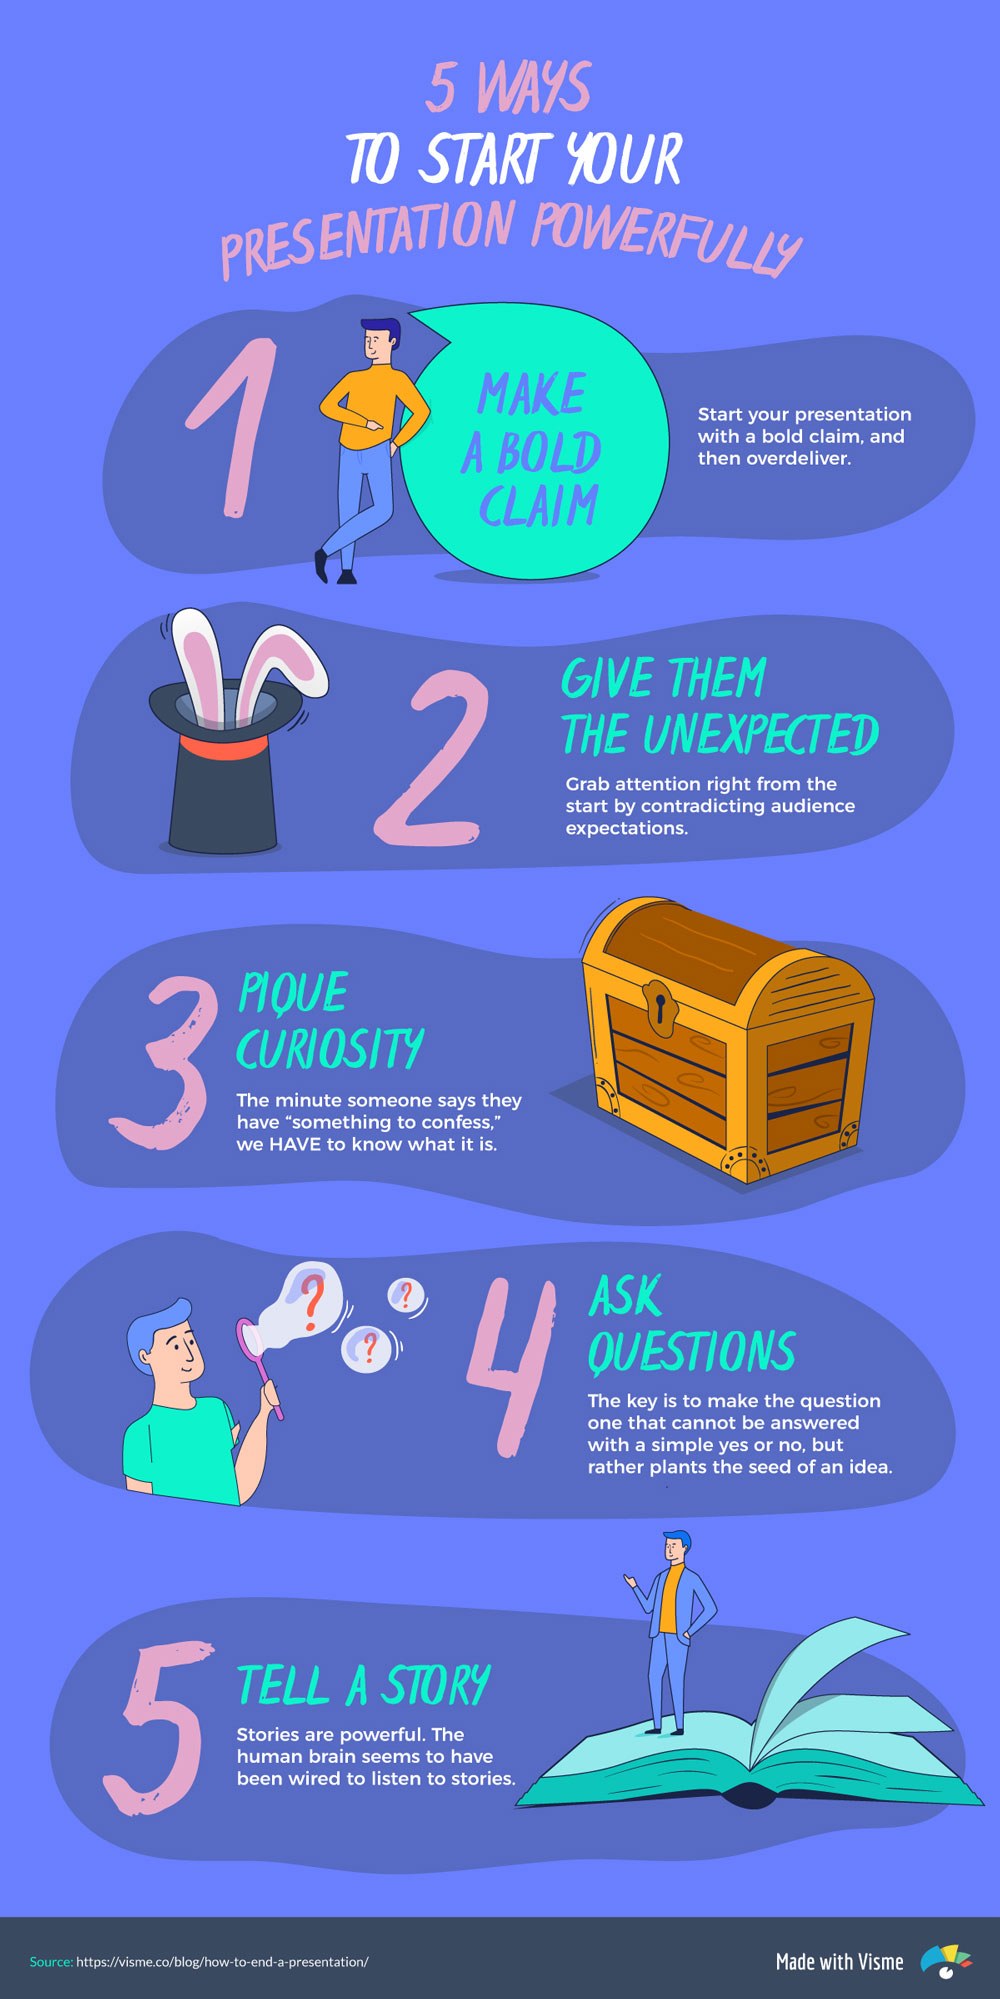 2how-to-start-a-presentation-visme-infographic